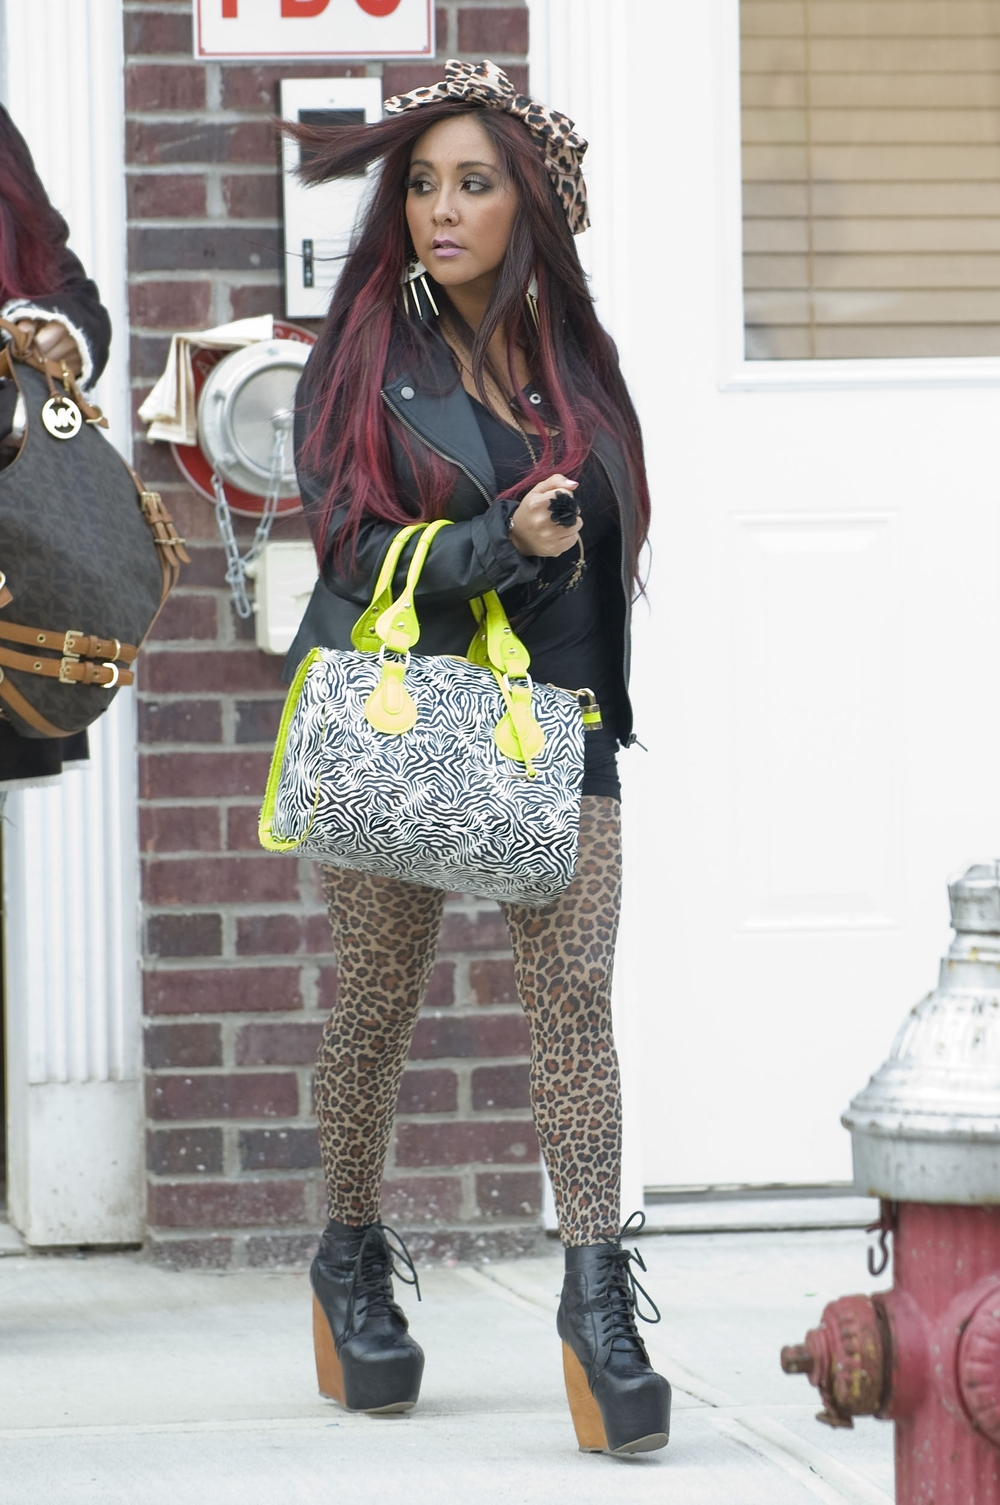 It's Confirmed: Snooki Is Pregnant and Engaged!